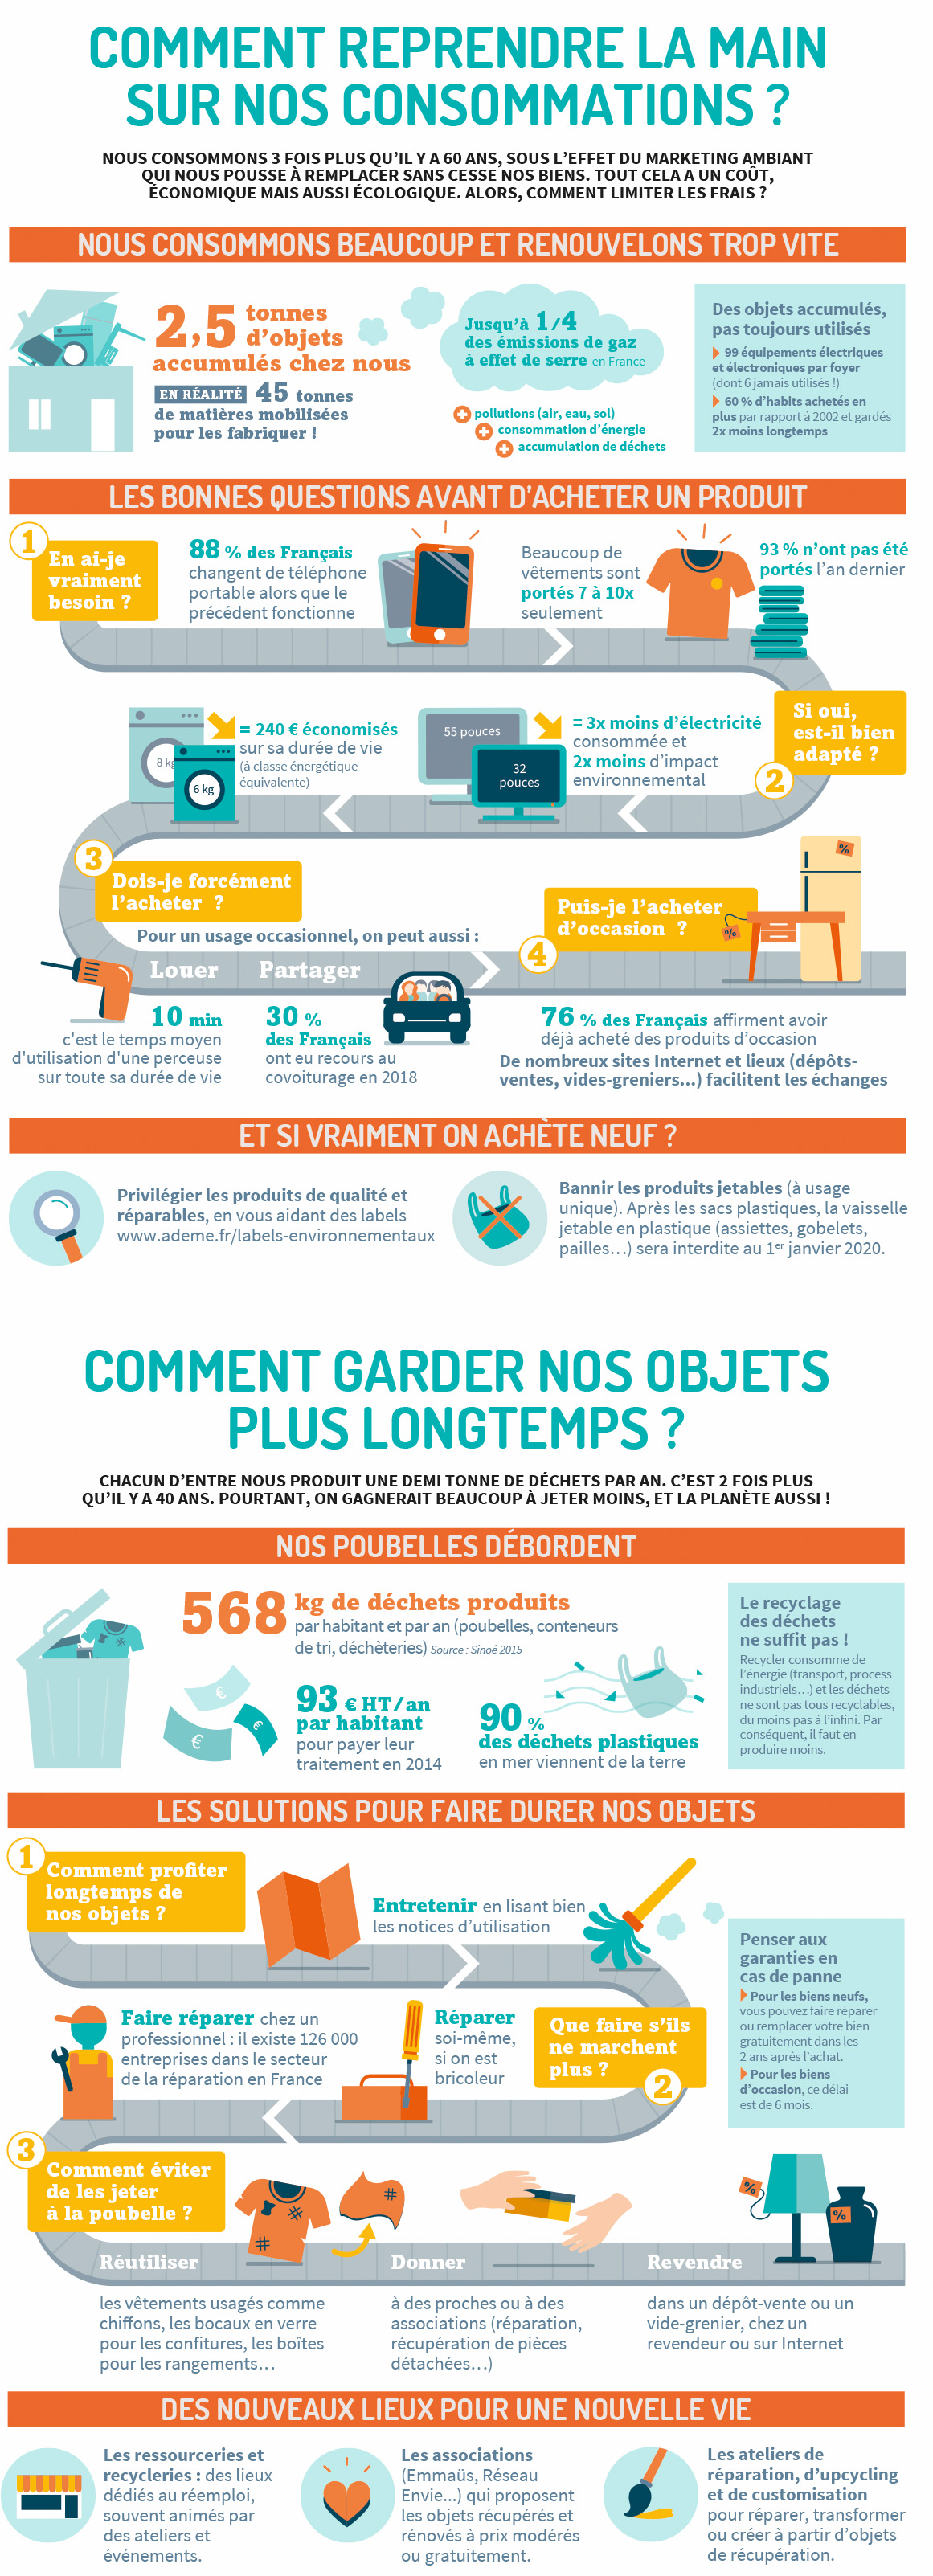 infographie-consommation-garder-objets-1